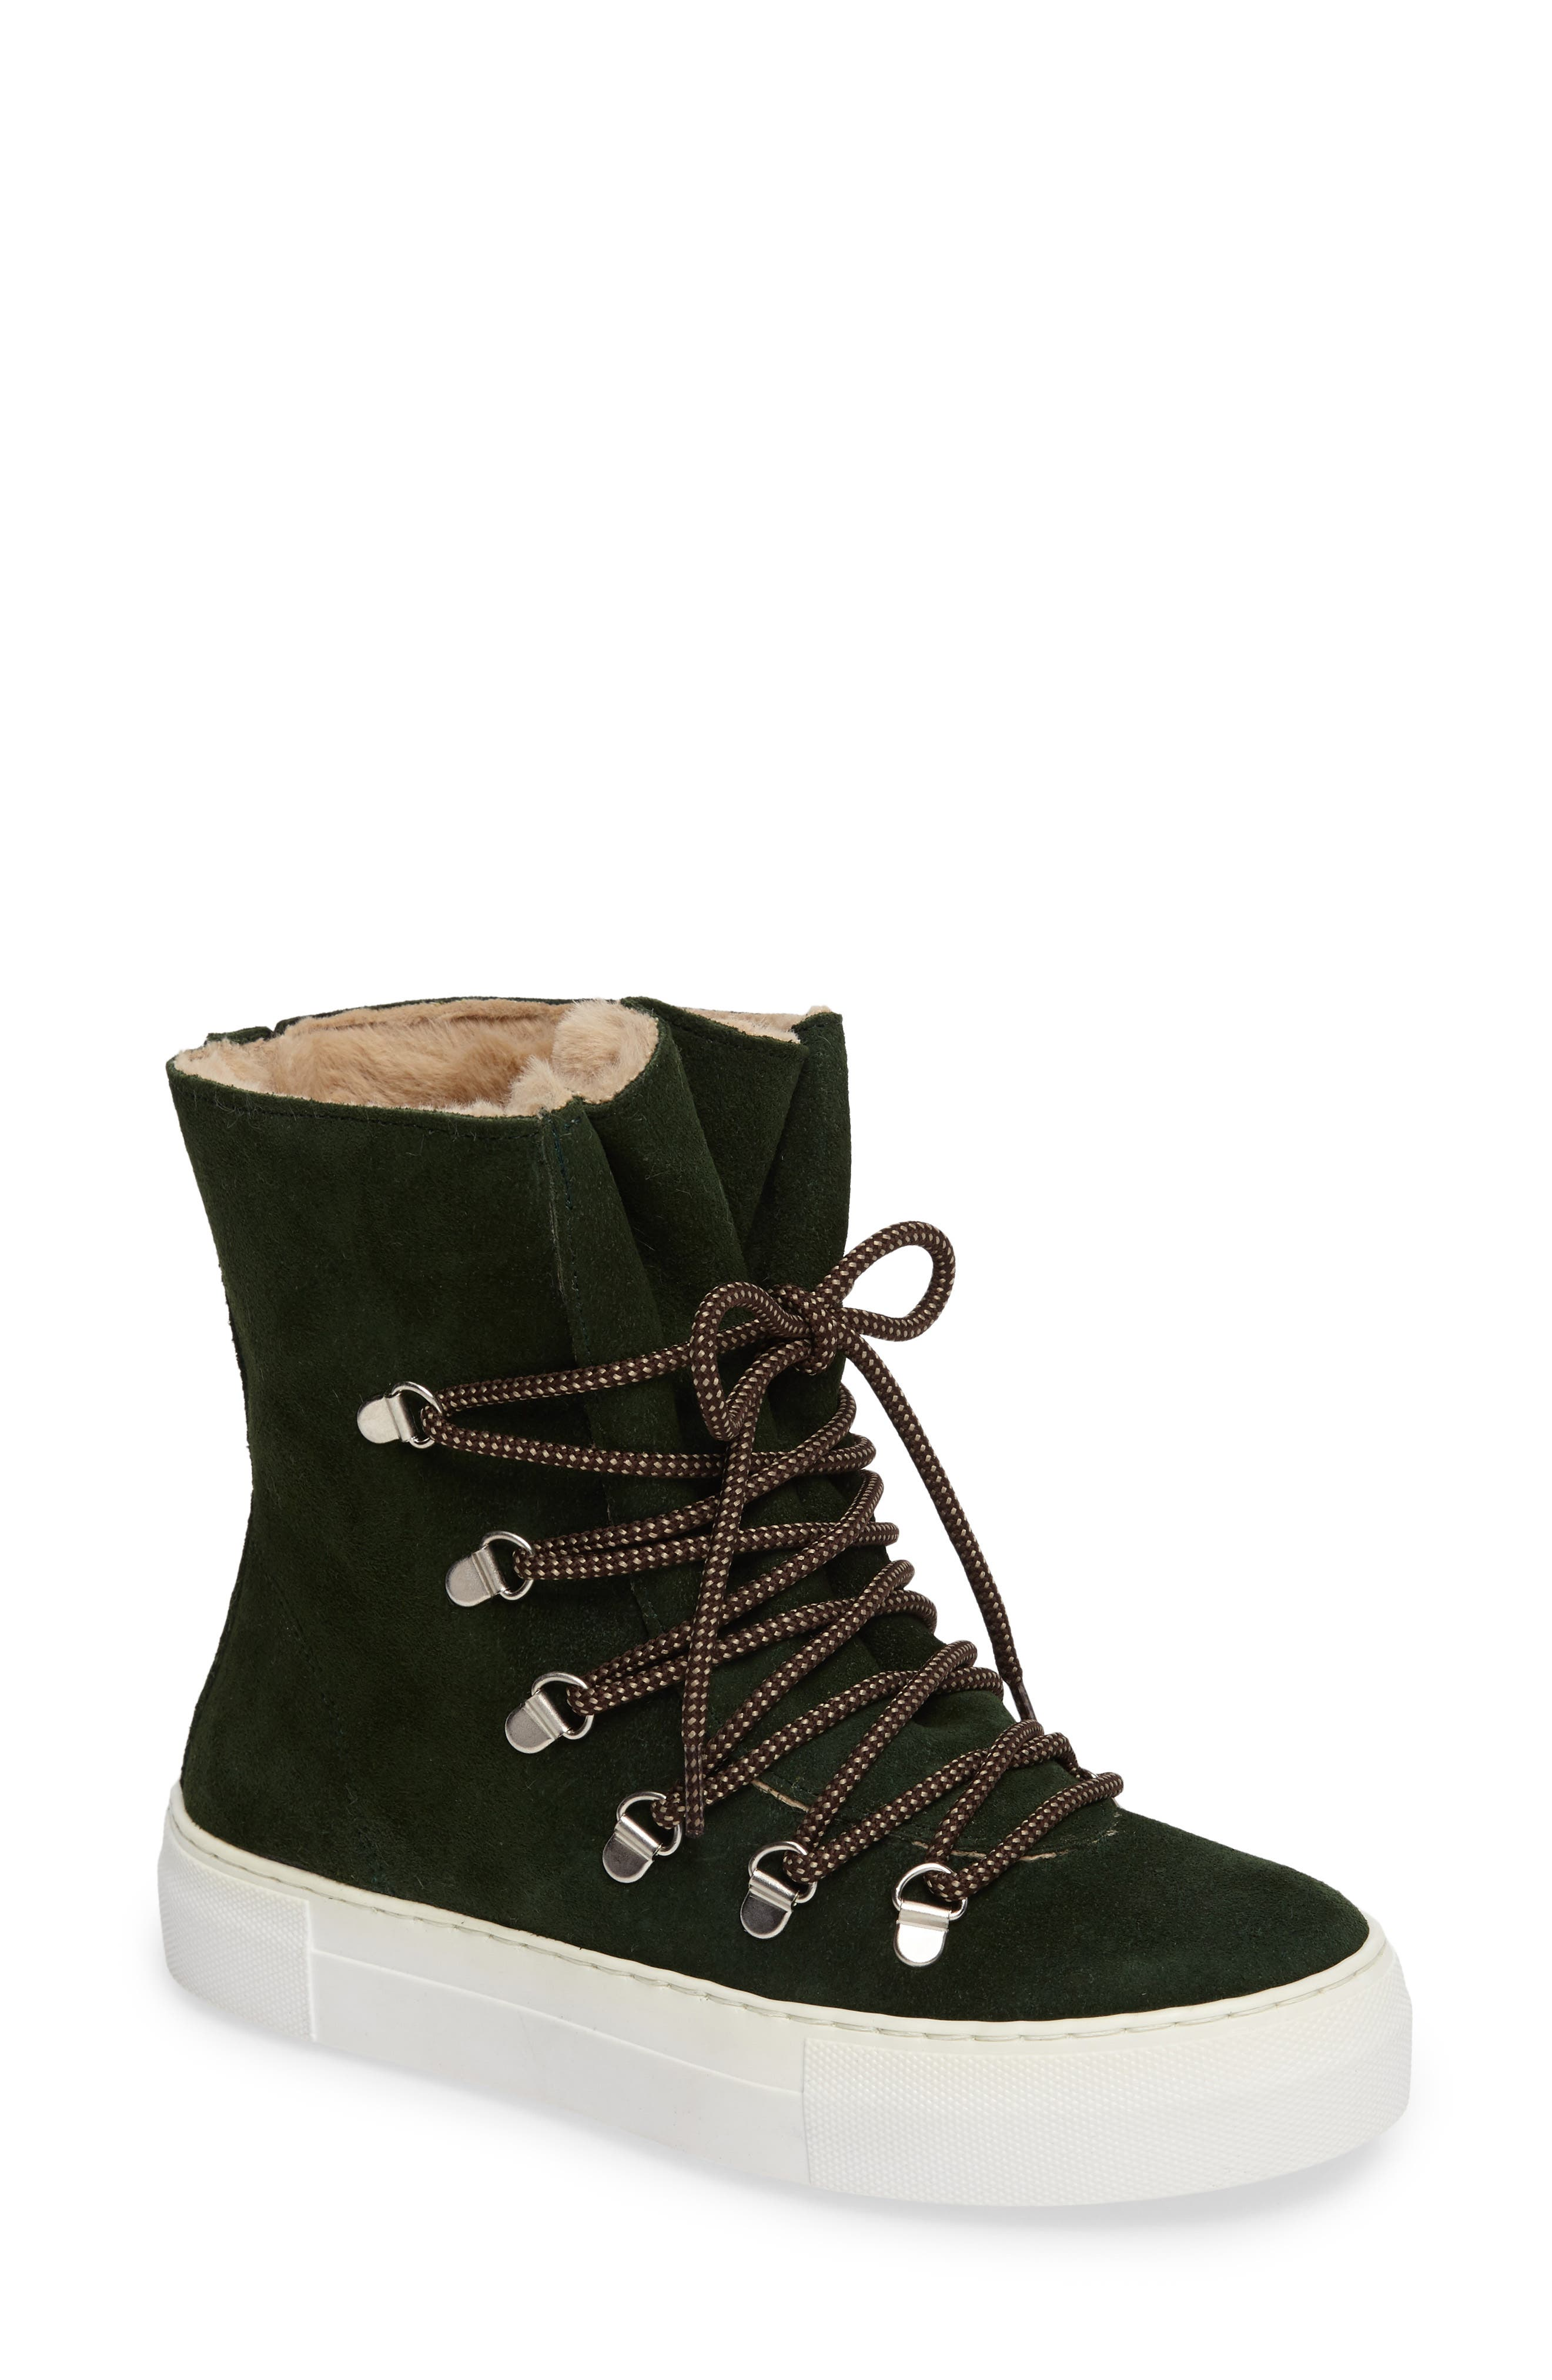 Cimone High Top Sneaker,                         Main,                         color, Green Suede